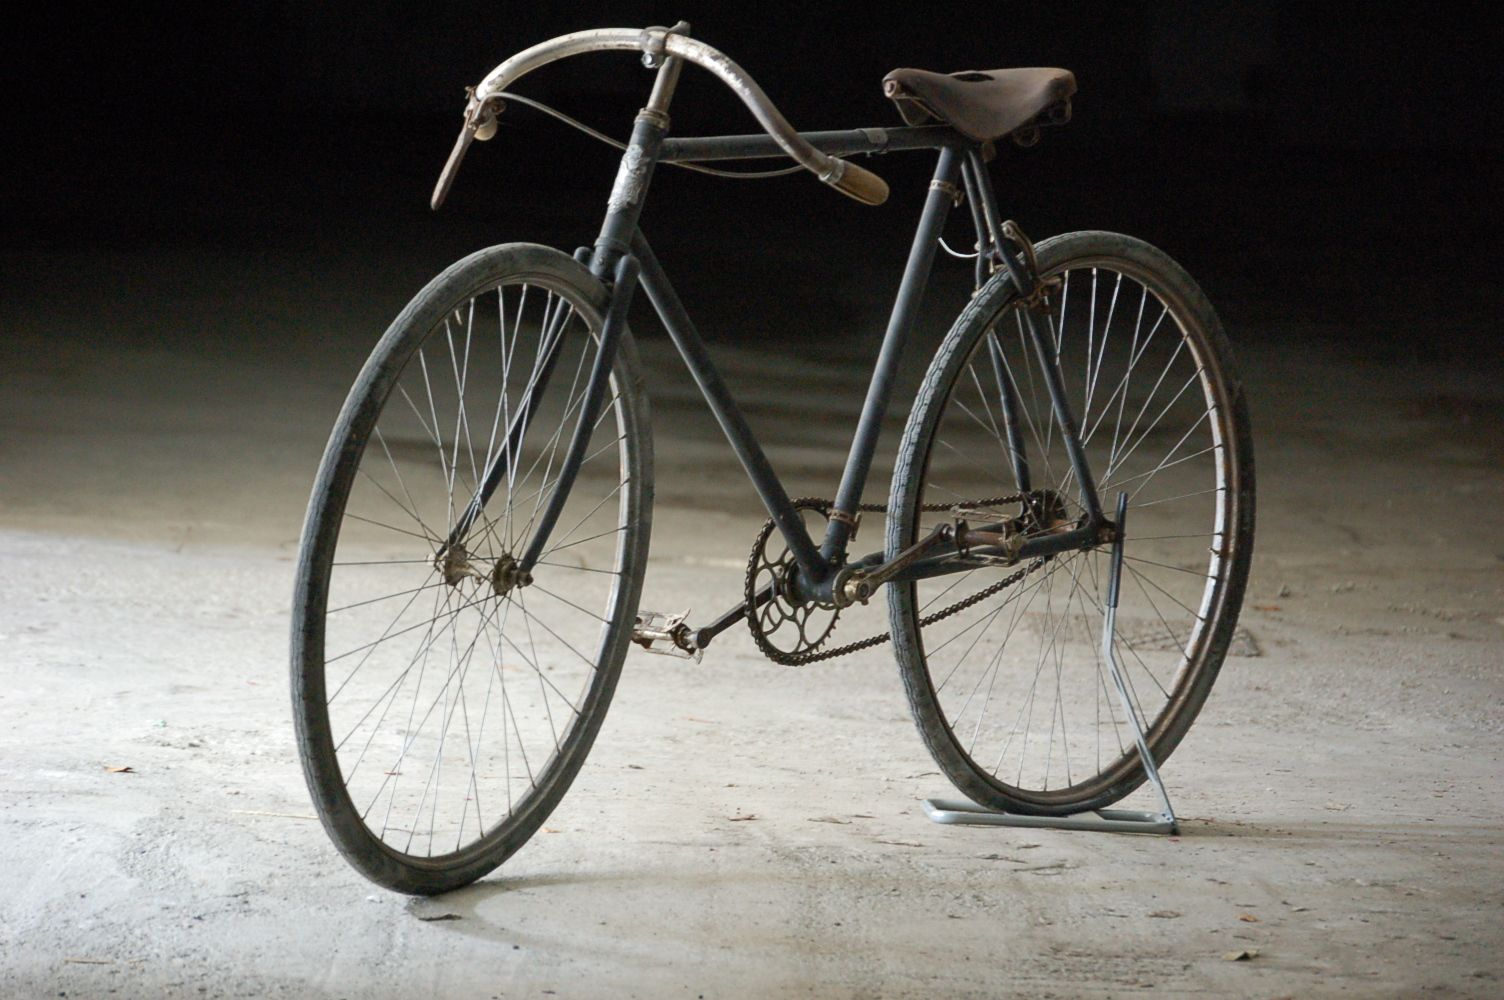 Elegantly Old Race Bicycles for sale worldwide shipping